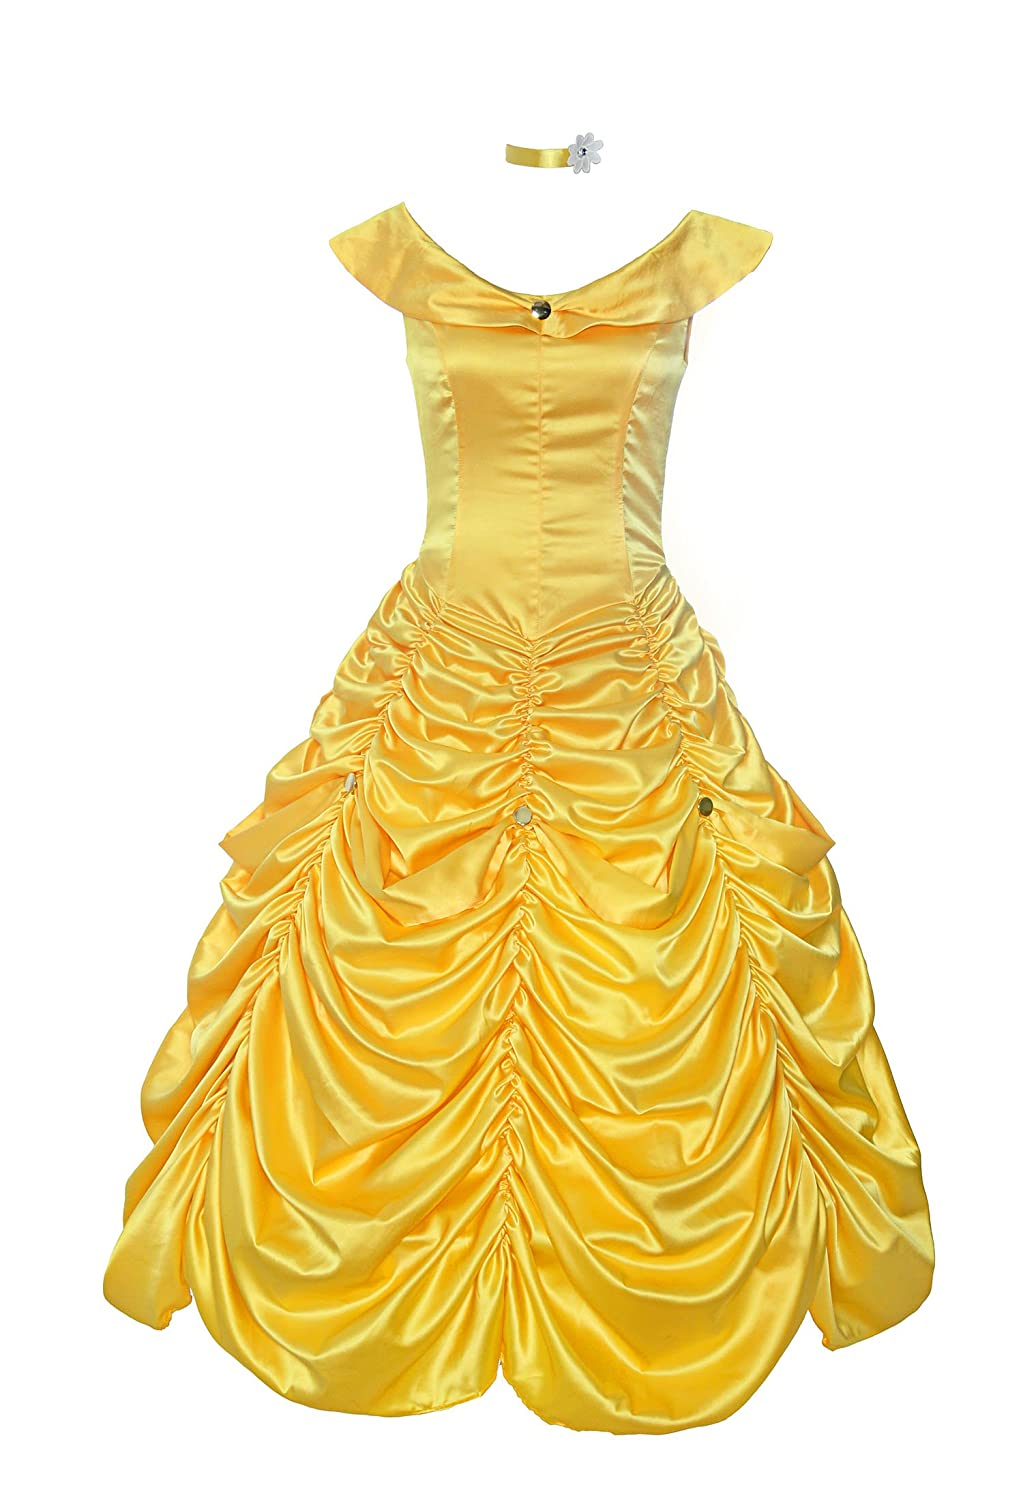 ReliBeauty Womens Princess Belle Costume Layered Dress up RB-T339